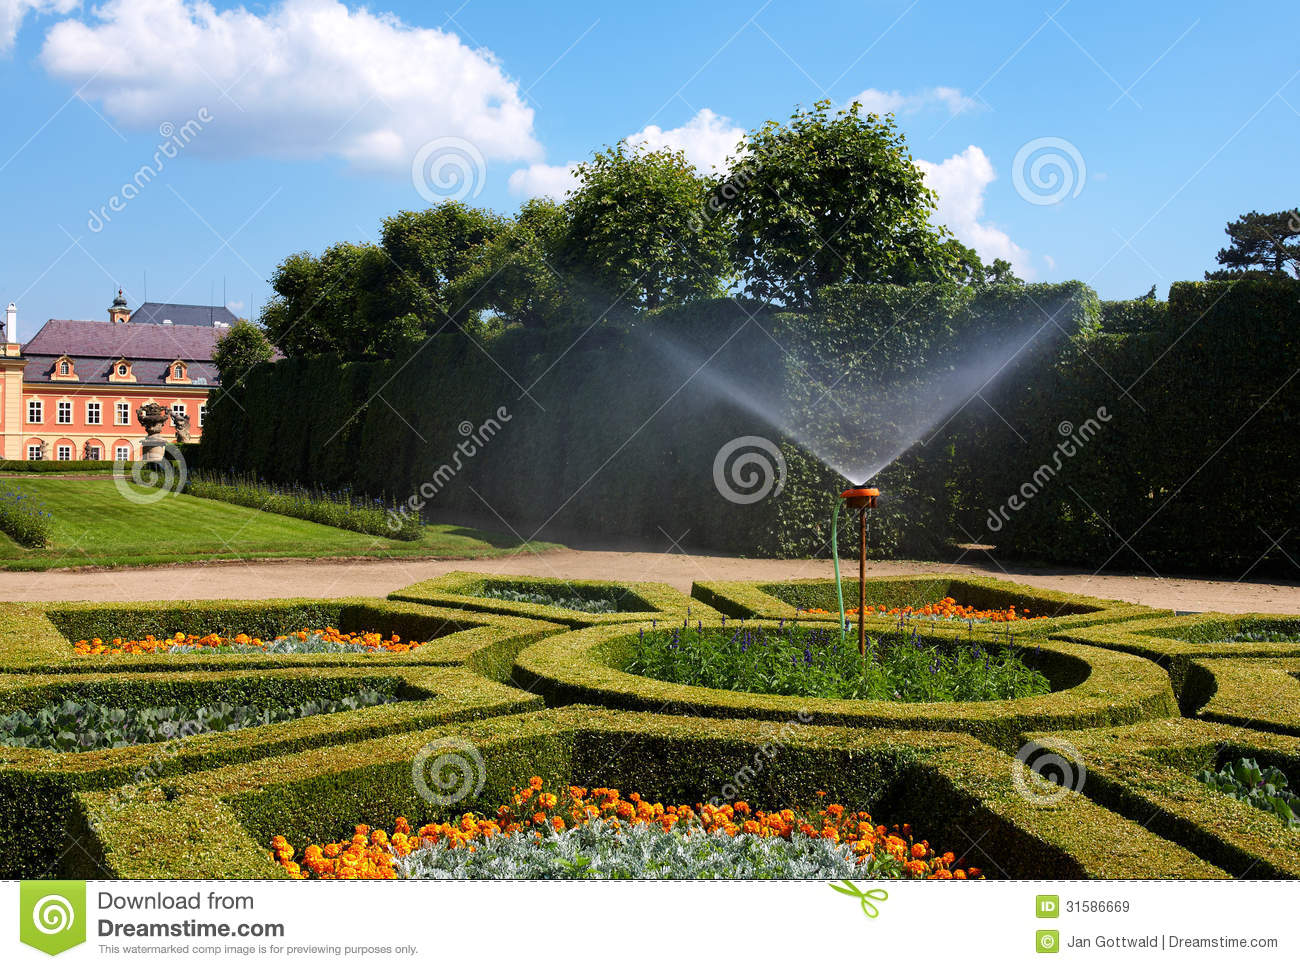 Dobris chateau stock image  Image of manor, cloud, rococo